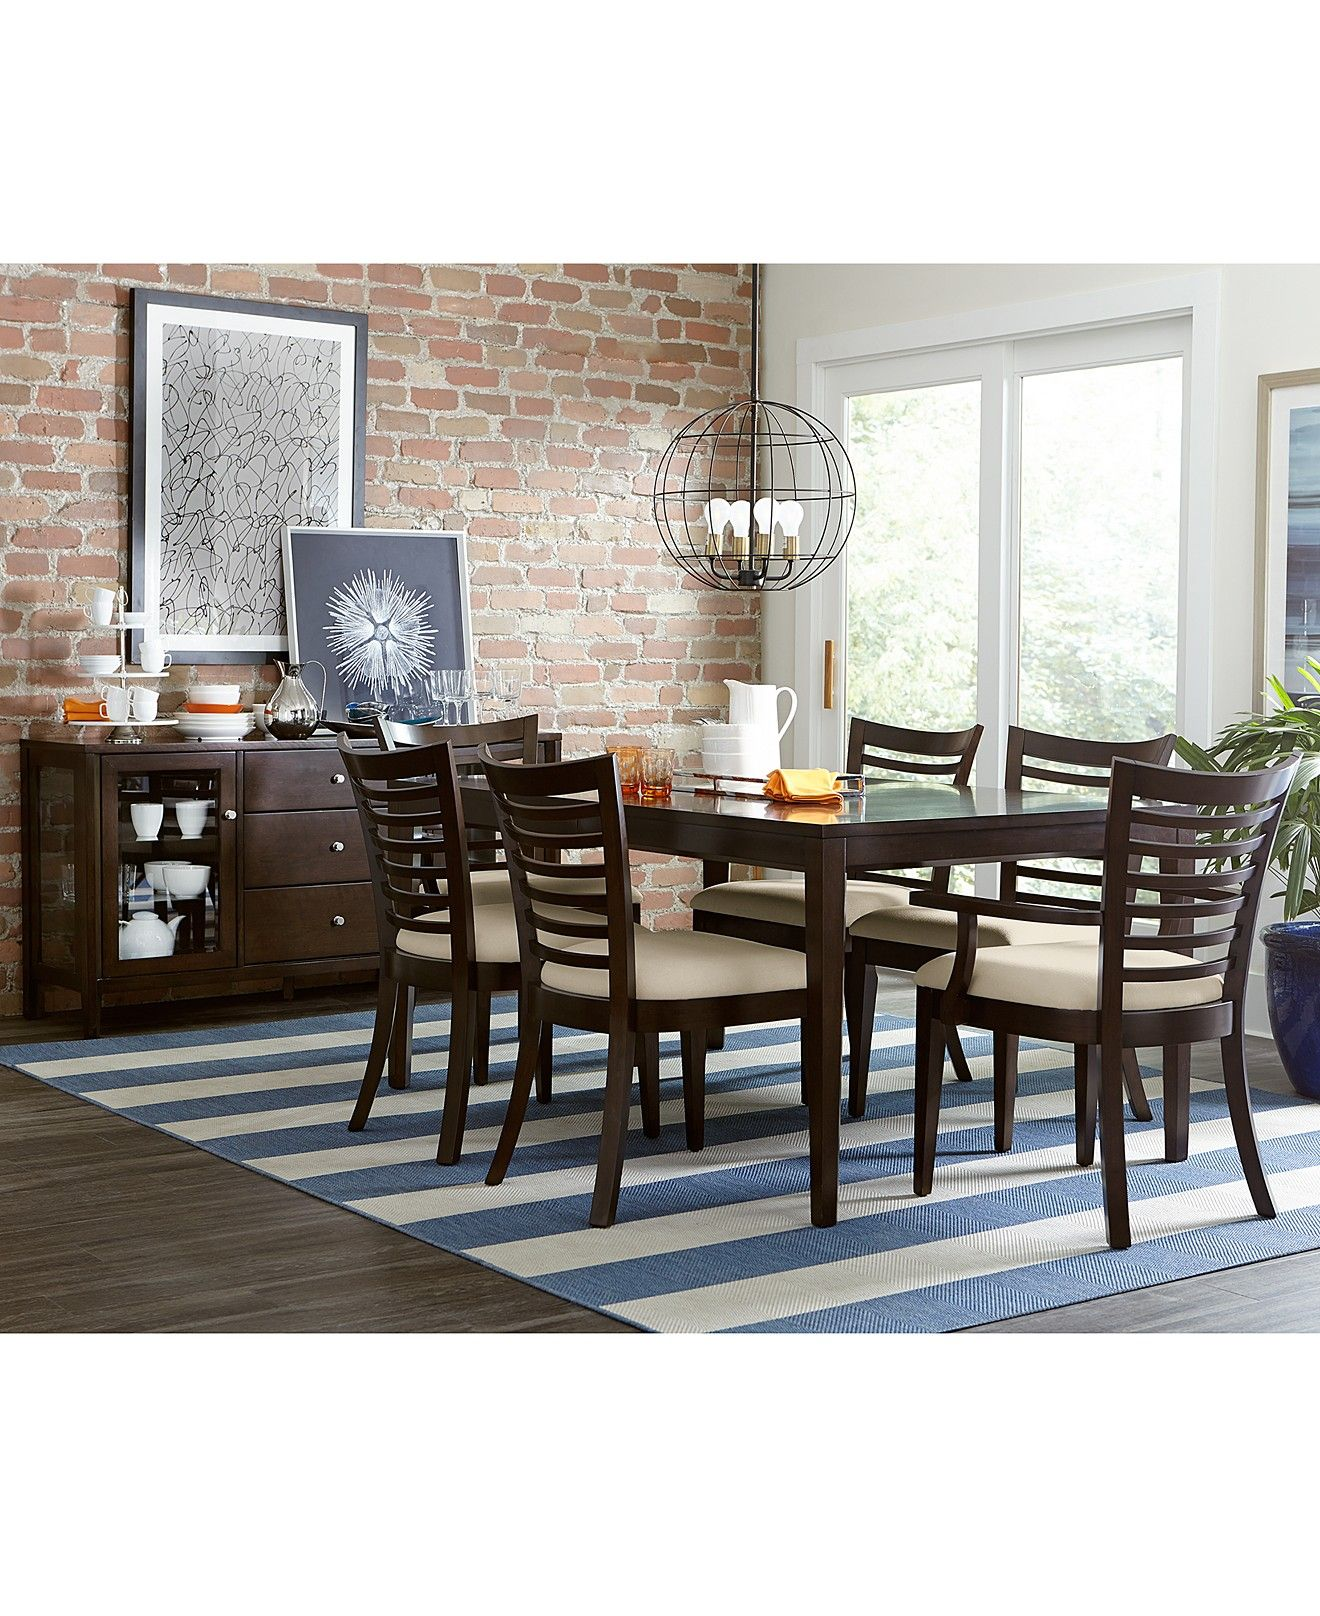 Www Macyfurniture: Brisbane Dining Furniture Collection